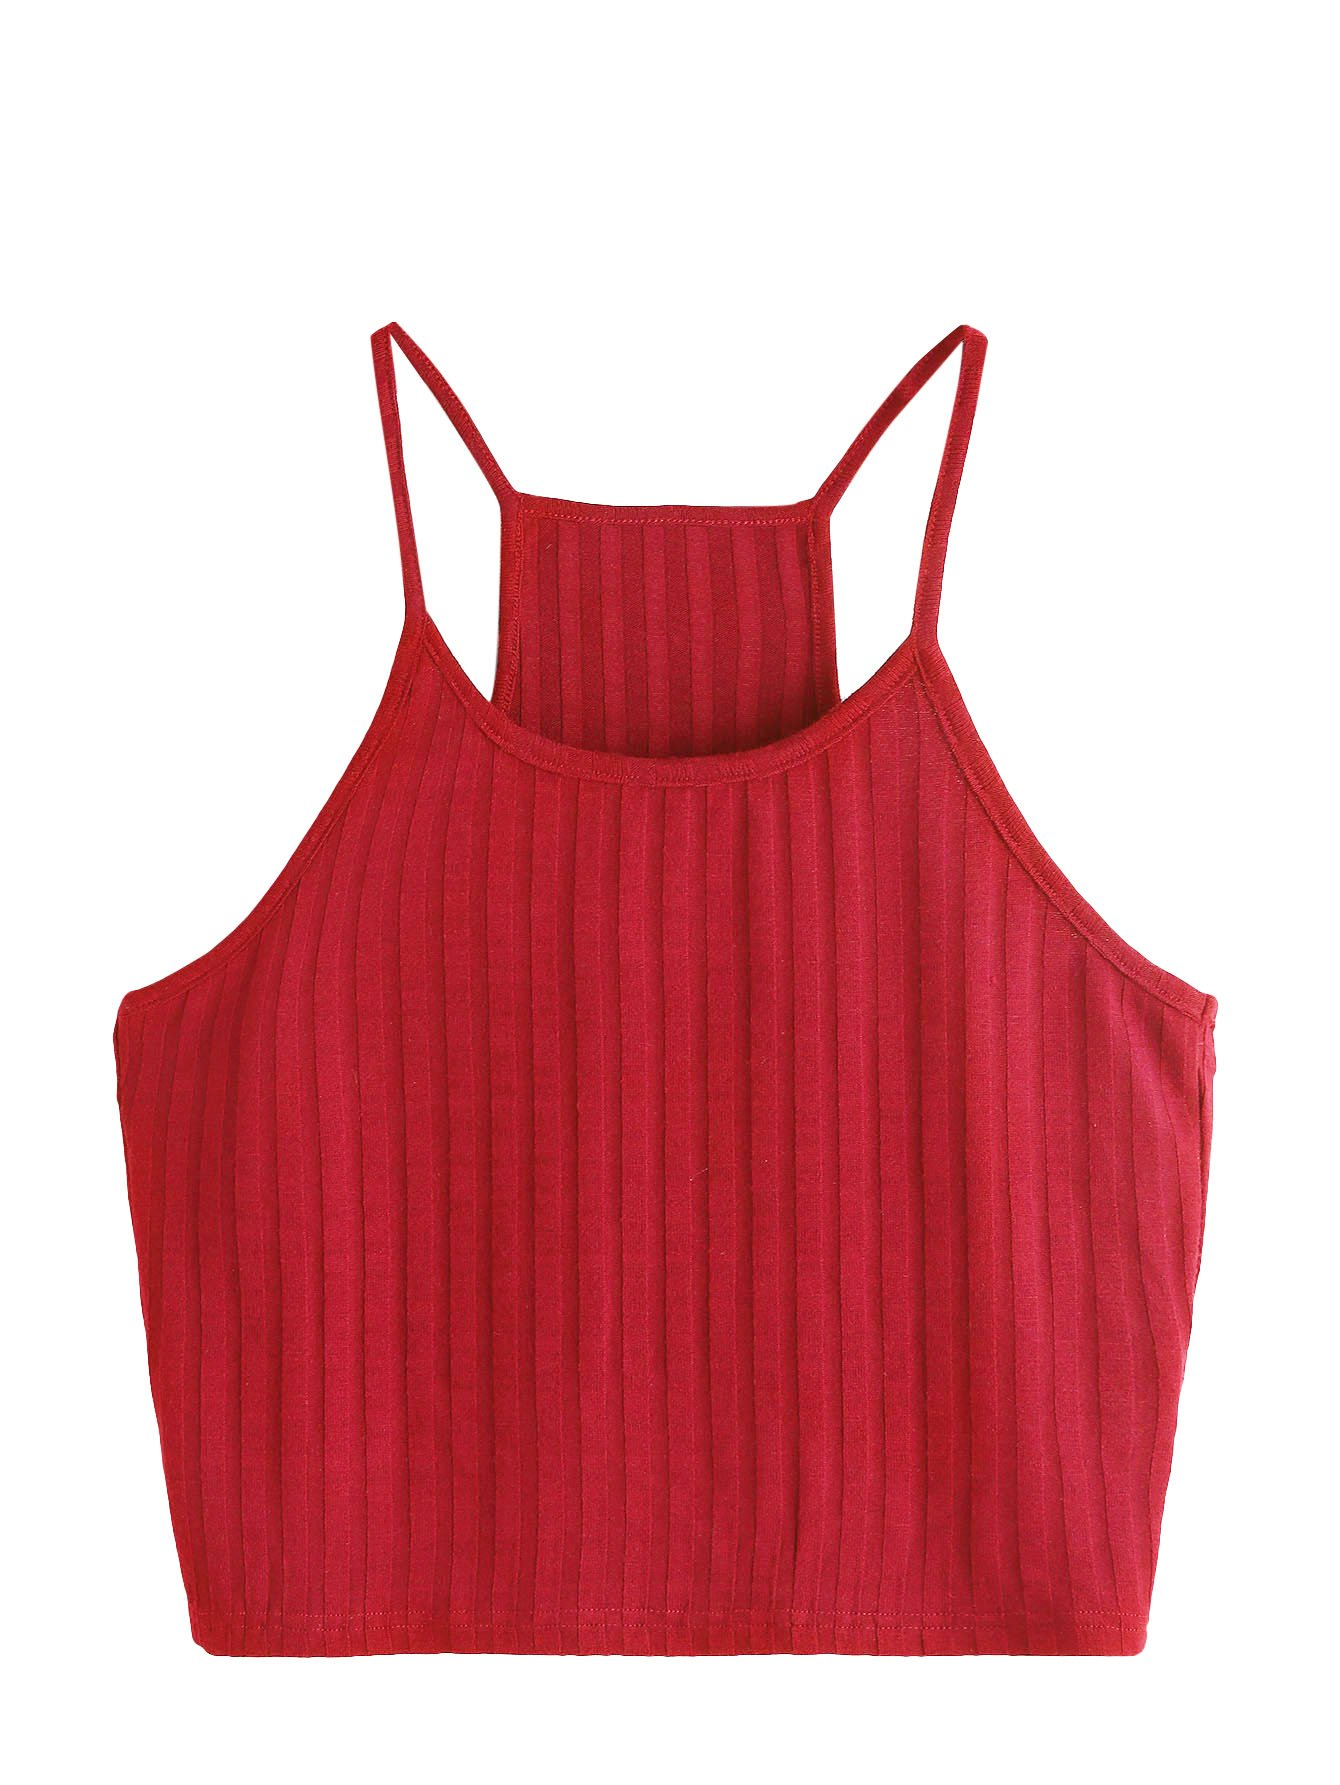 SheIn Women's Summer Basic Sexy Strappy Sleeveless Racerback Crop Top Small Red